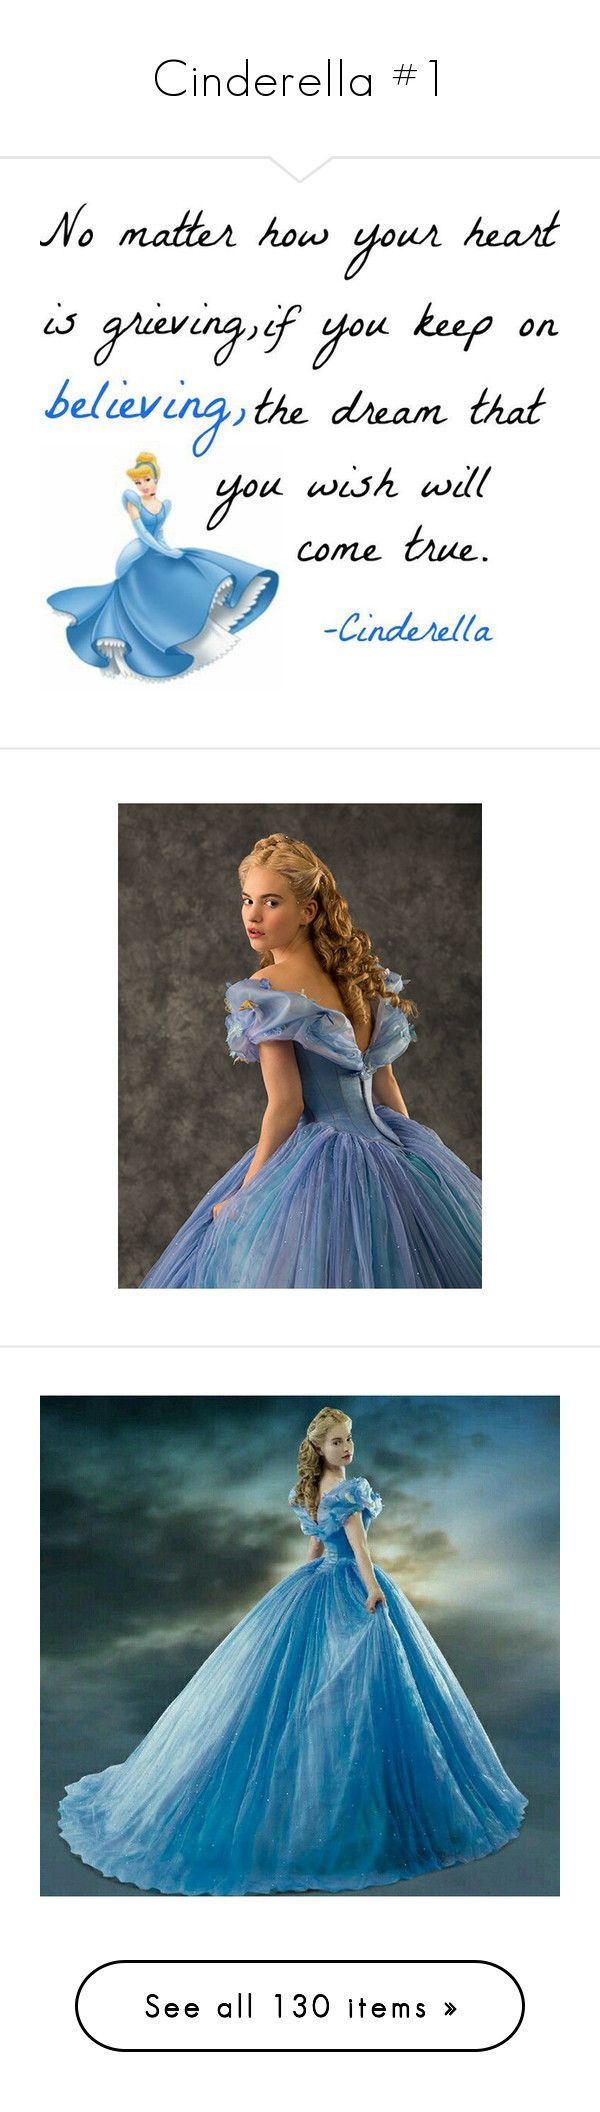 """Cinderella #1"" by whitewitchbitxh ❤ liked on Polyvore featuring disney, cinderella, quotes, words, phrase, saying, text, beauty products, makeup and eye makeup"